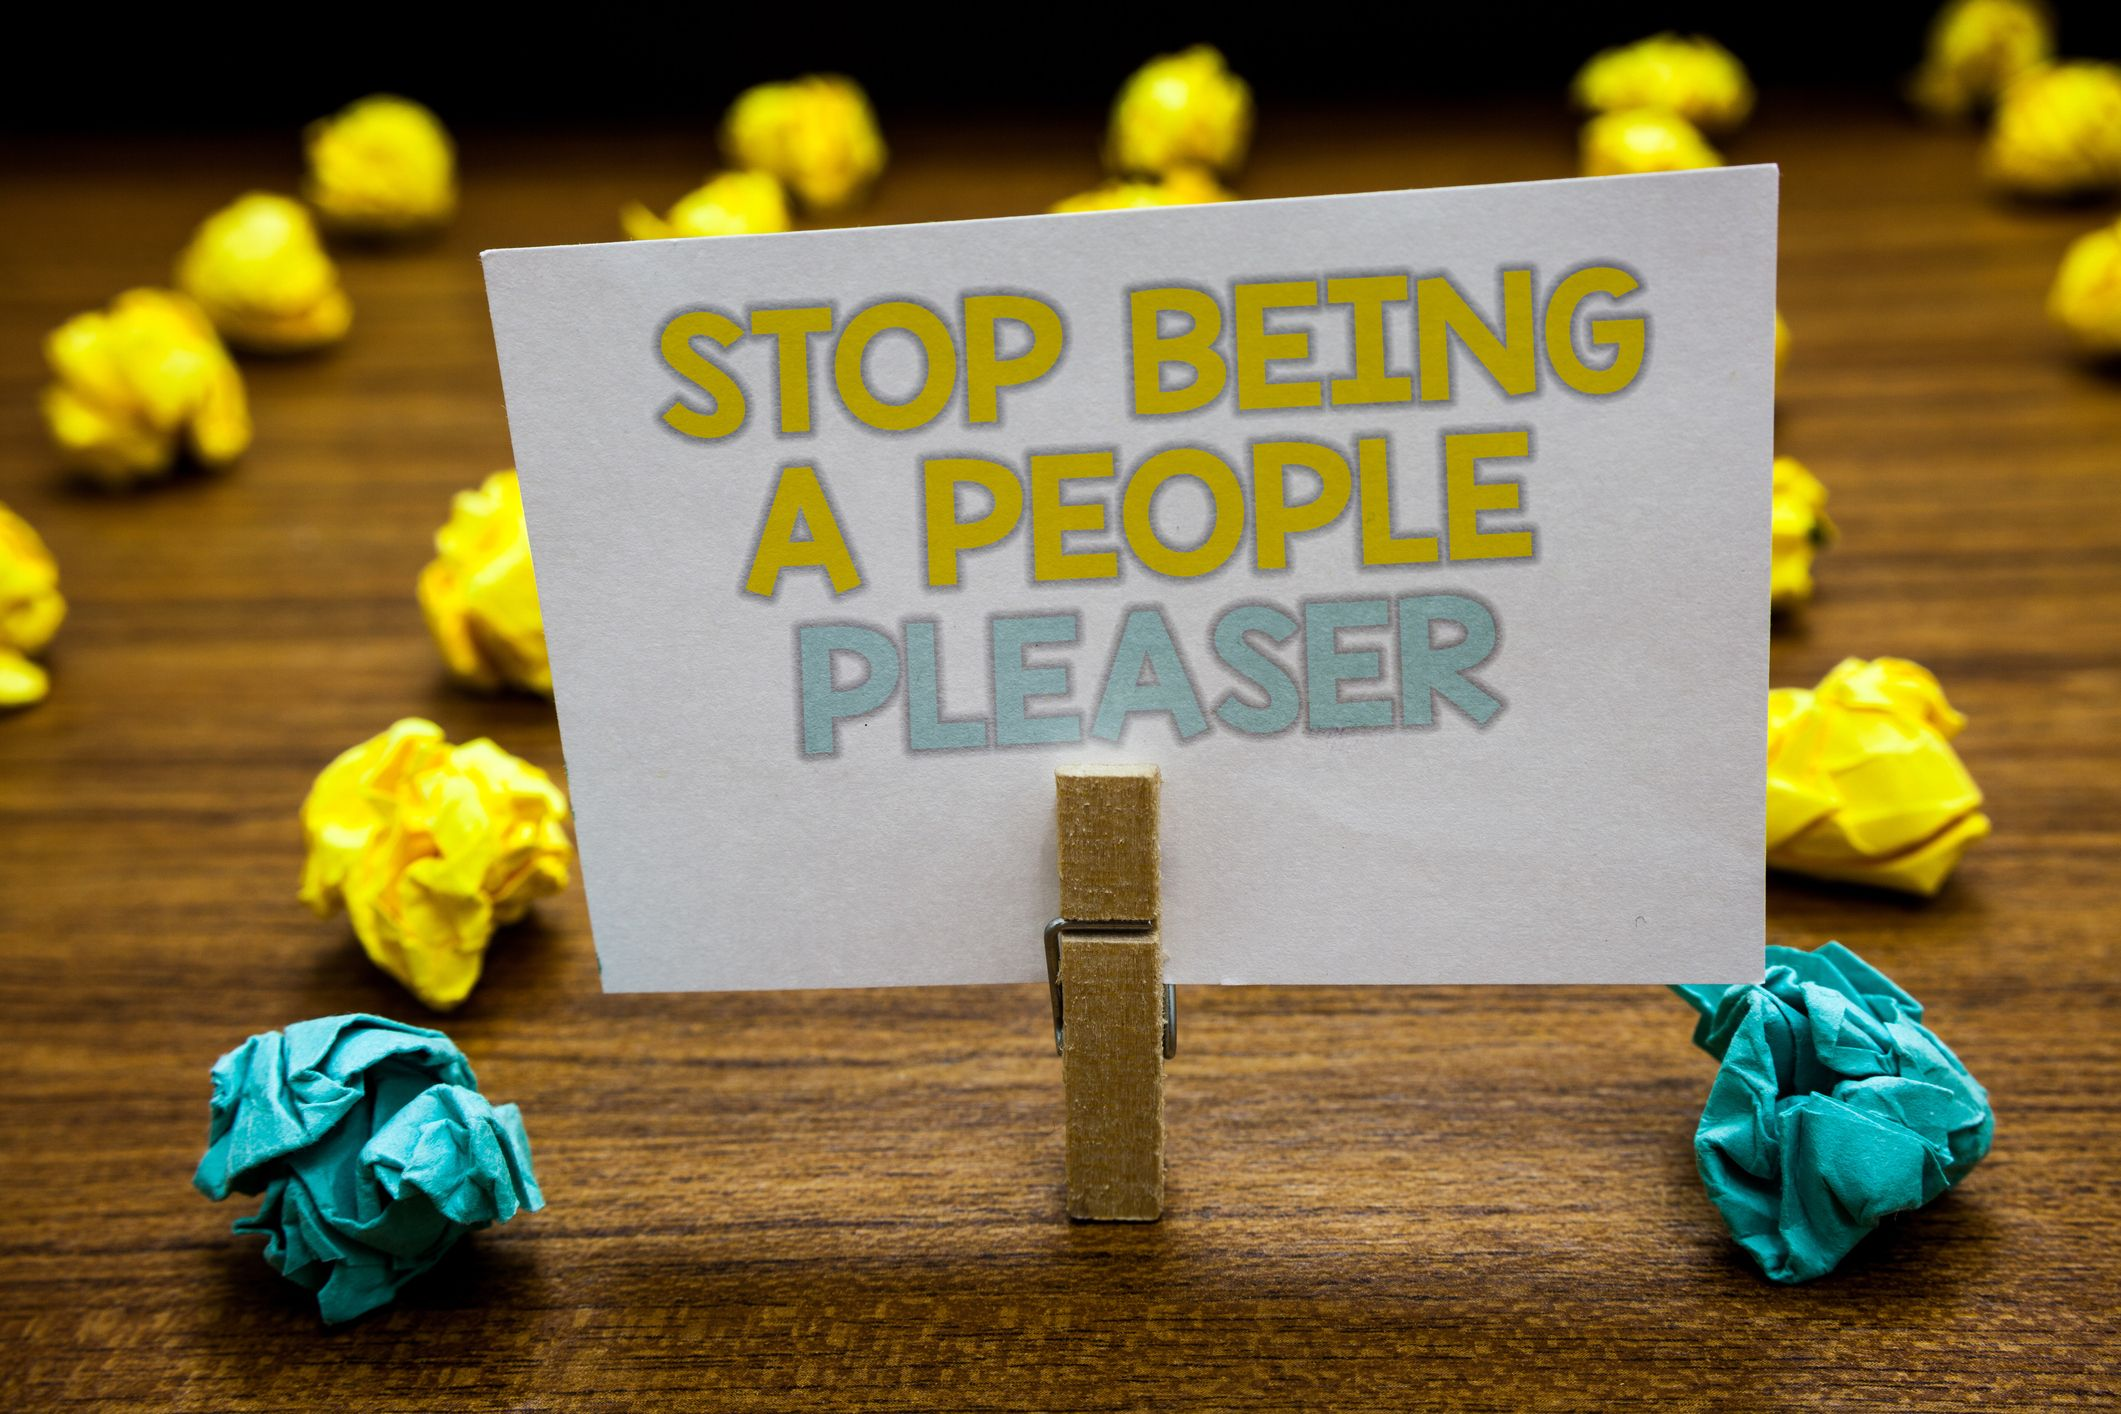 Take small steps to stop being a people pleaser